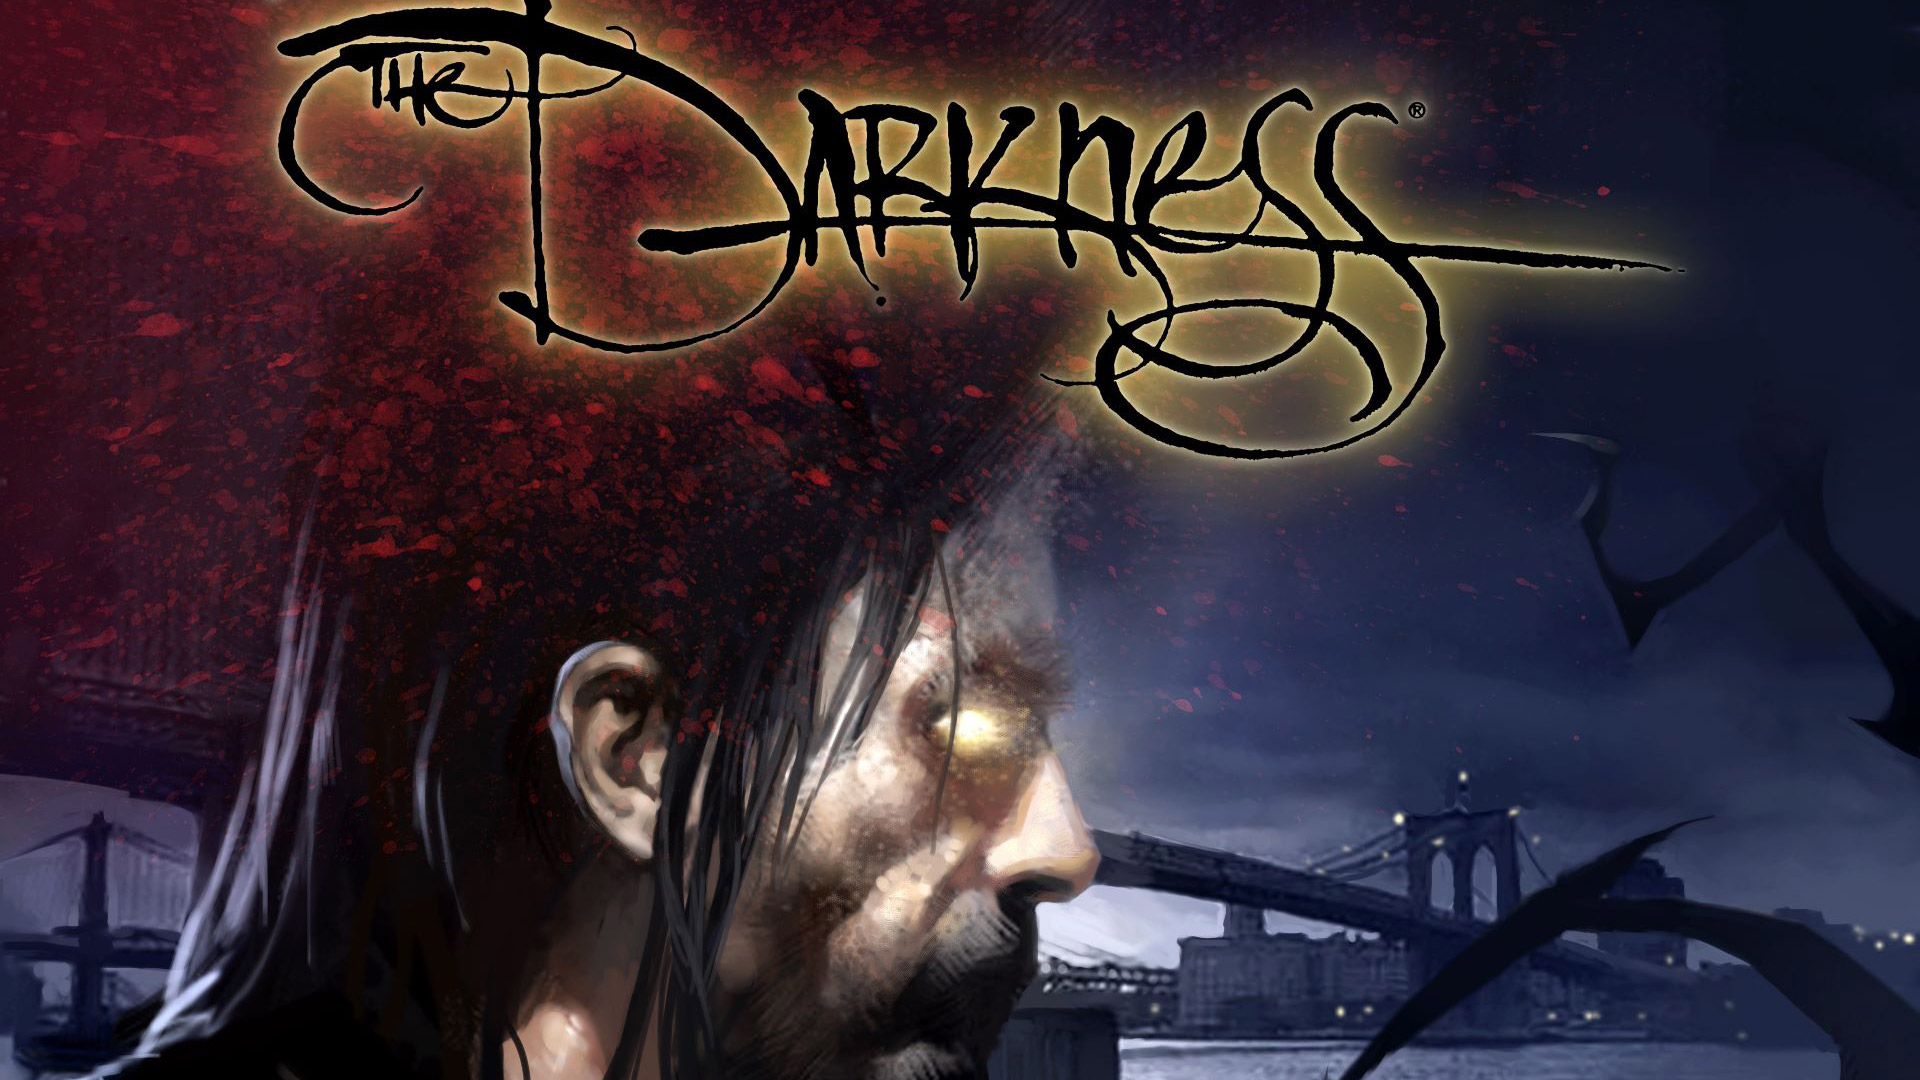 The Darkness Wallpaper in 1920x1080